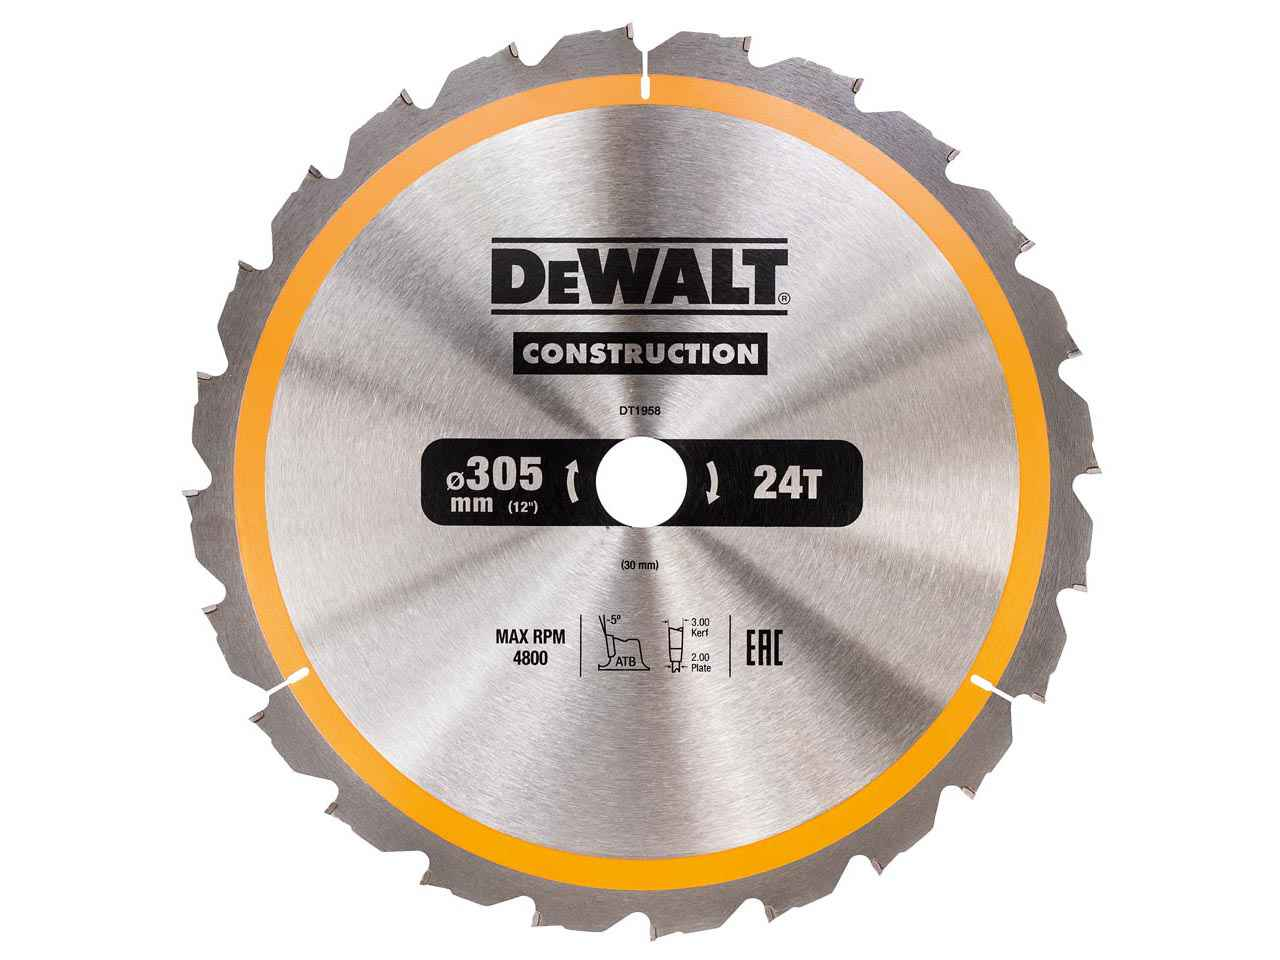 Dewalt dt1958qz construction circular saw blade 305 x 30 24t greentooth Choice Image